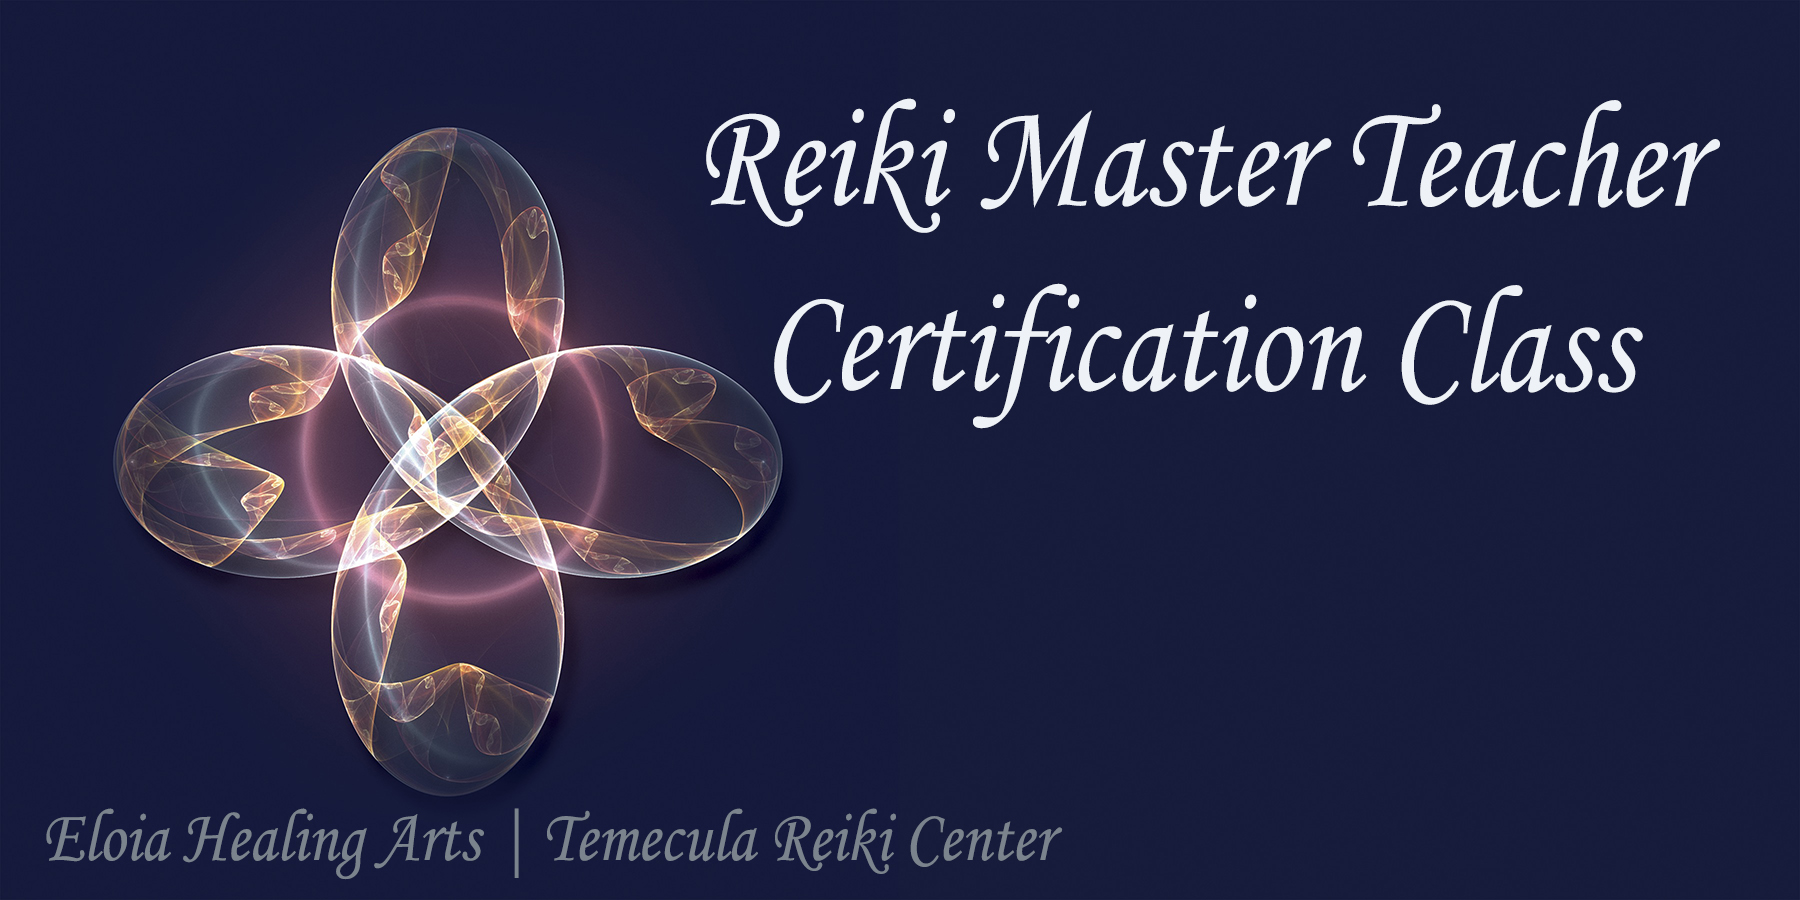 Usui Reiki Master Teacher, Certification Class @ Temecula Reiki Center